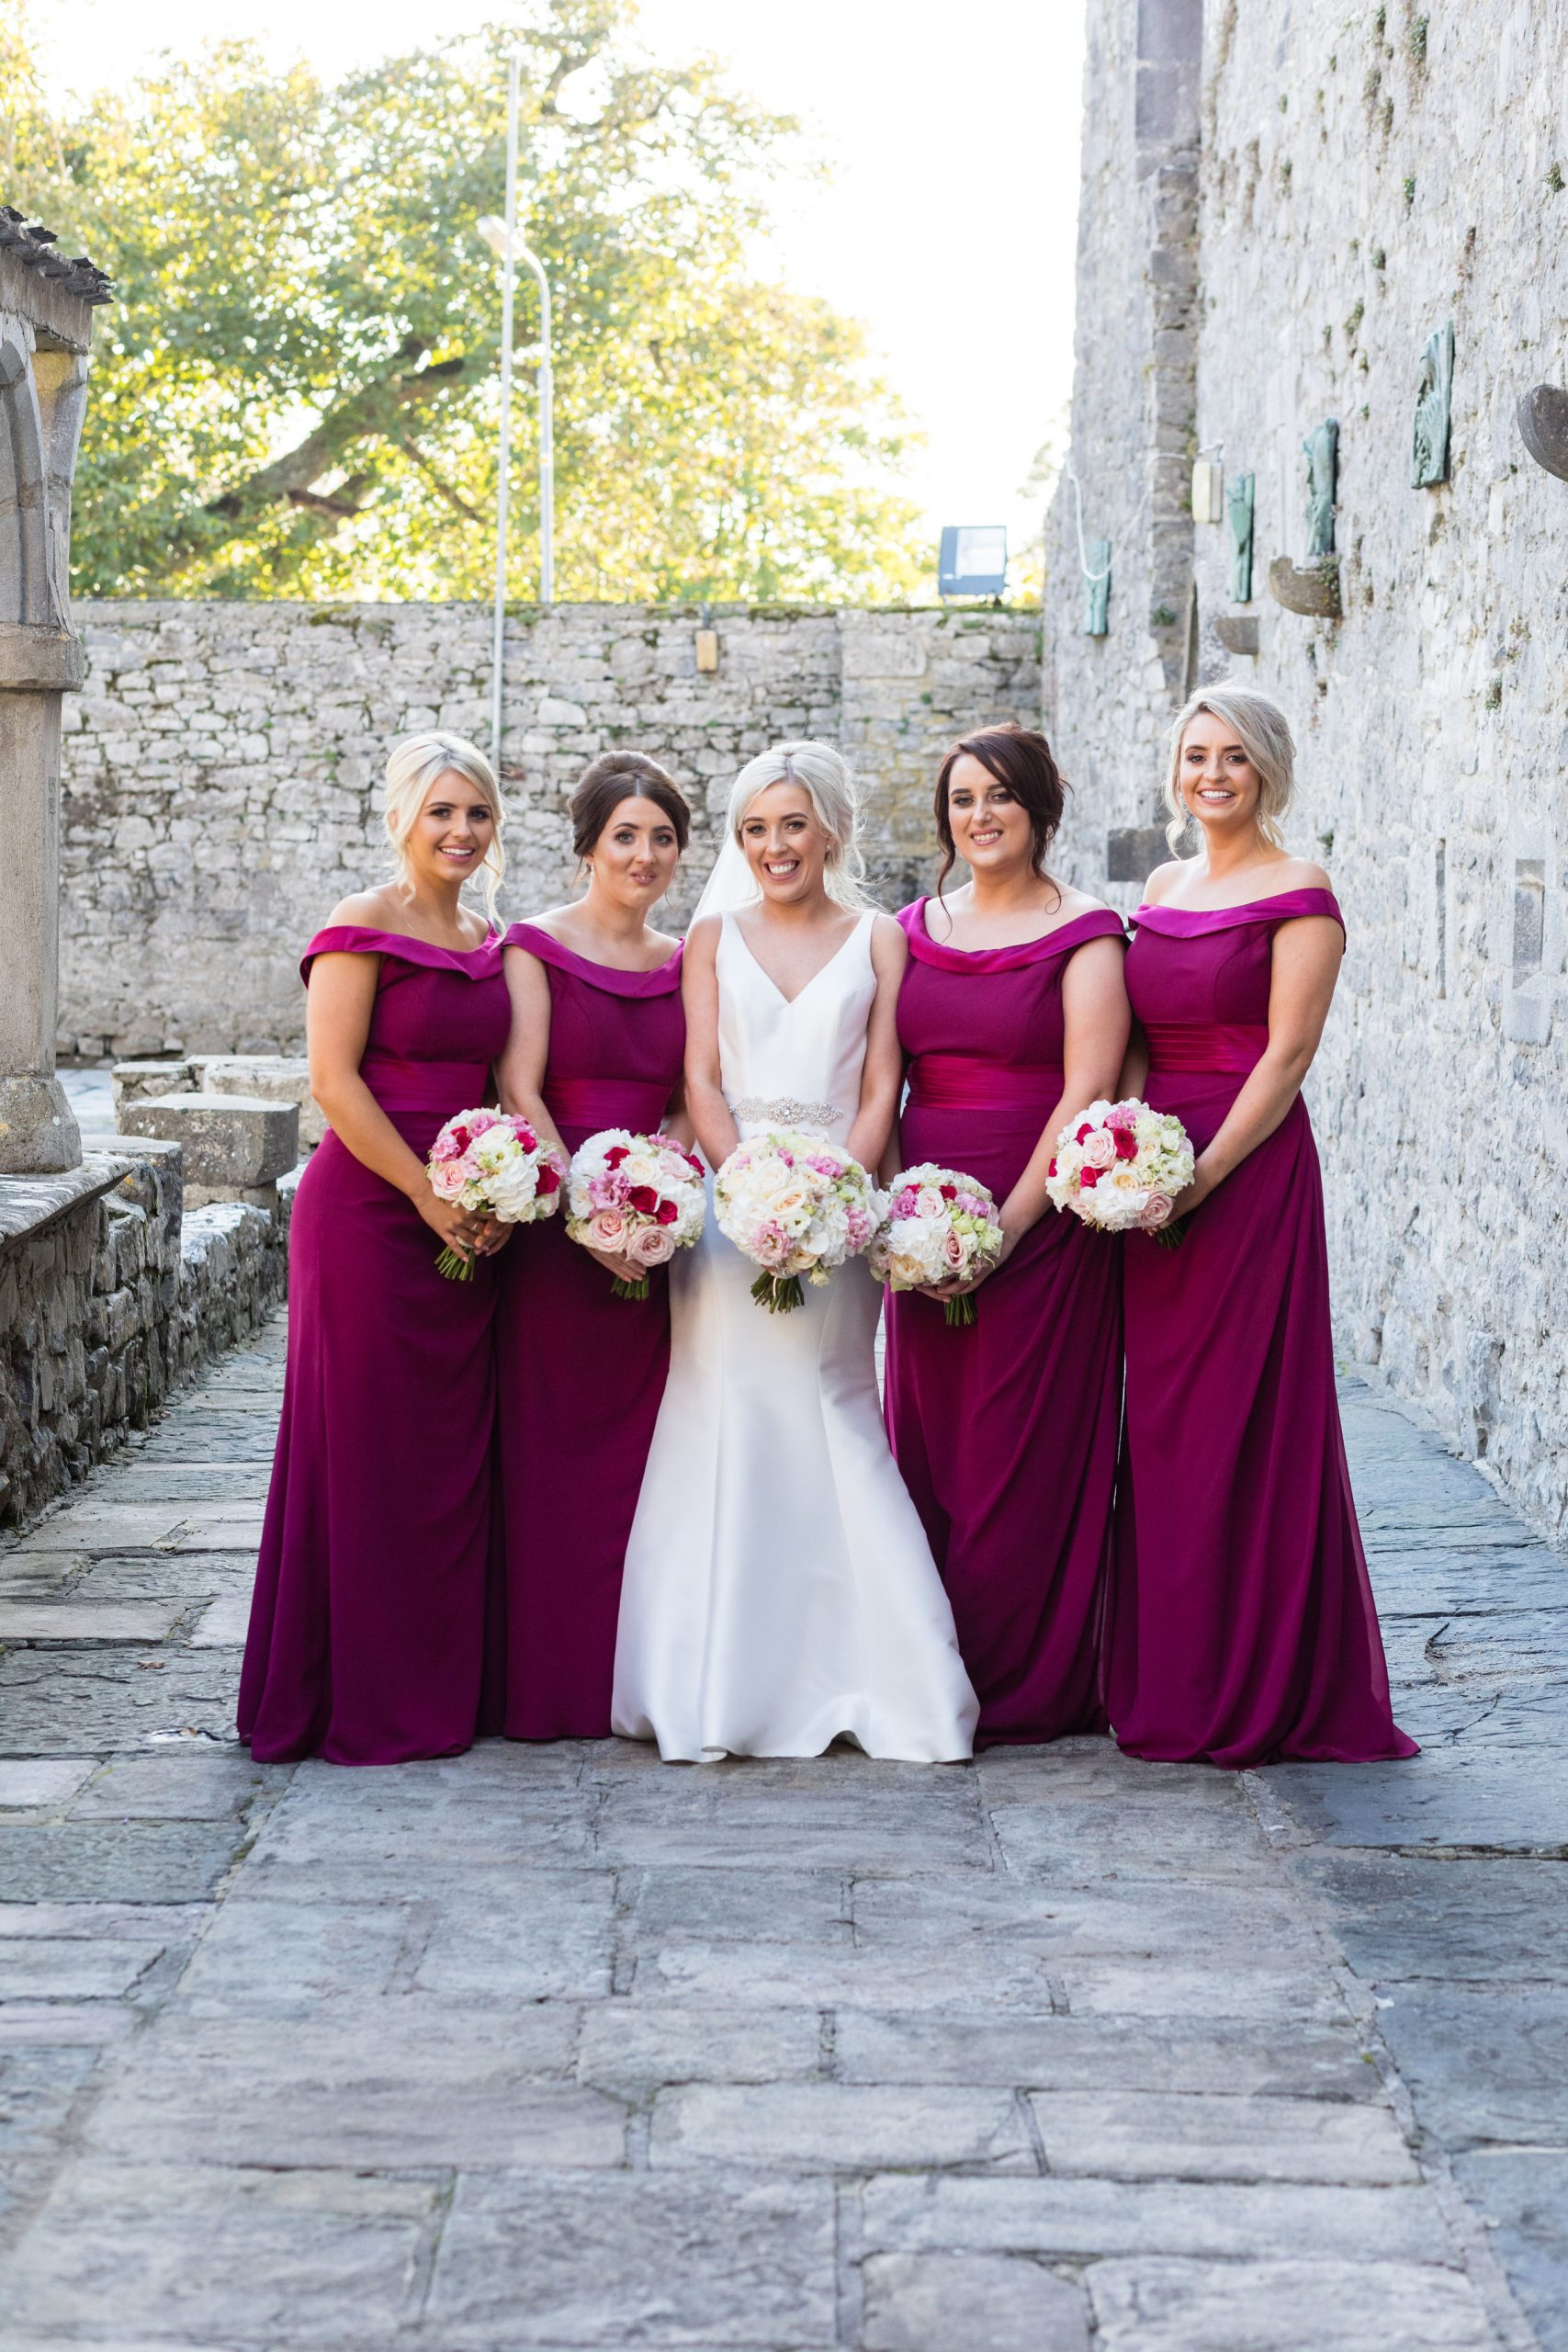 Fuschia wedding bouquets